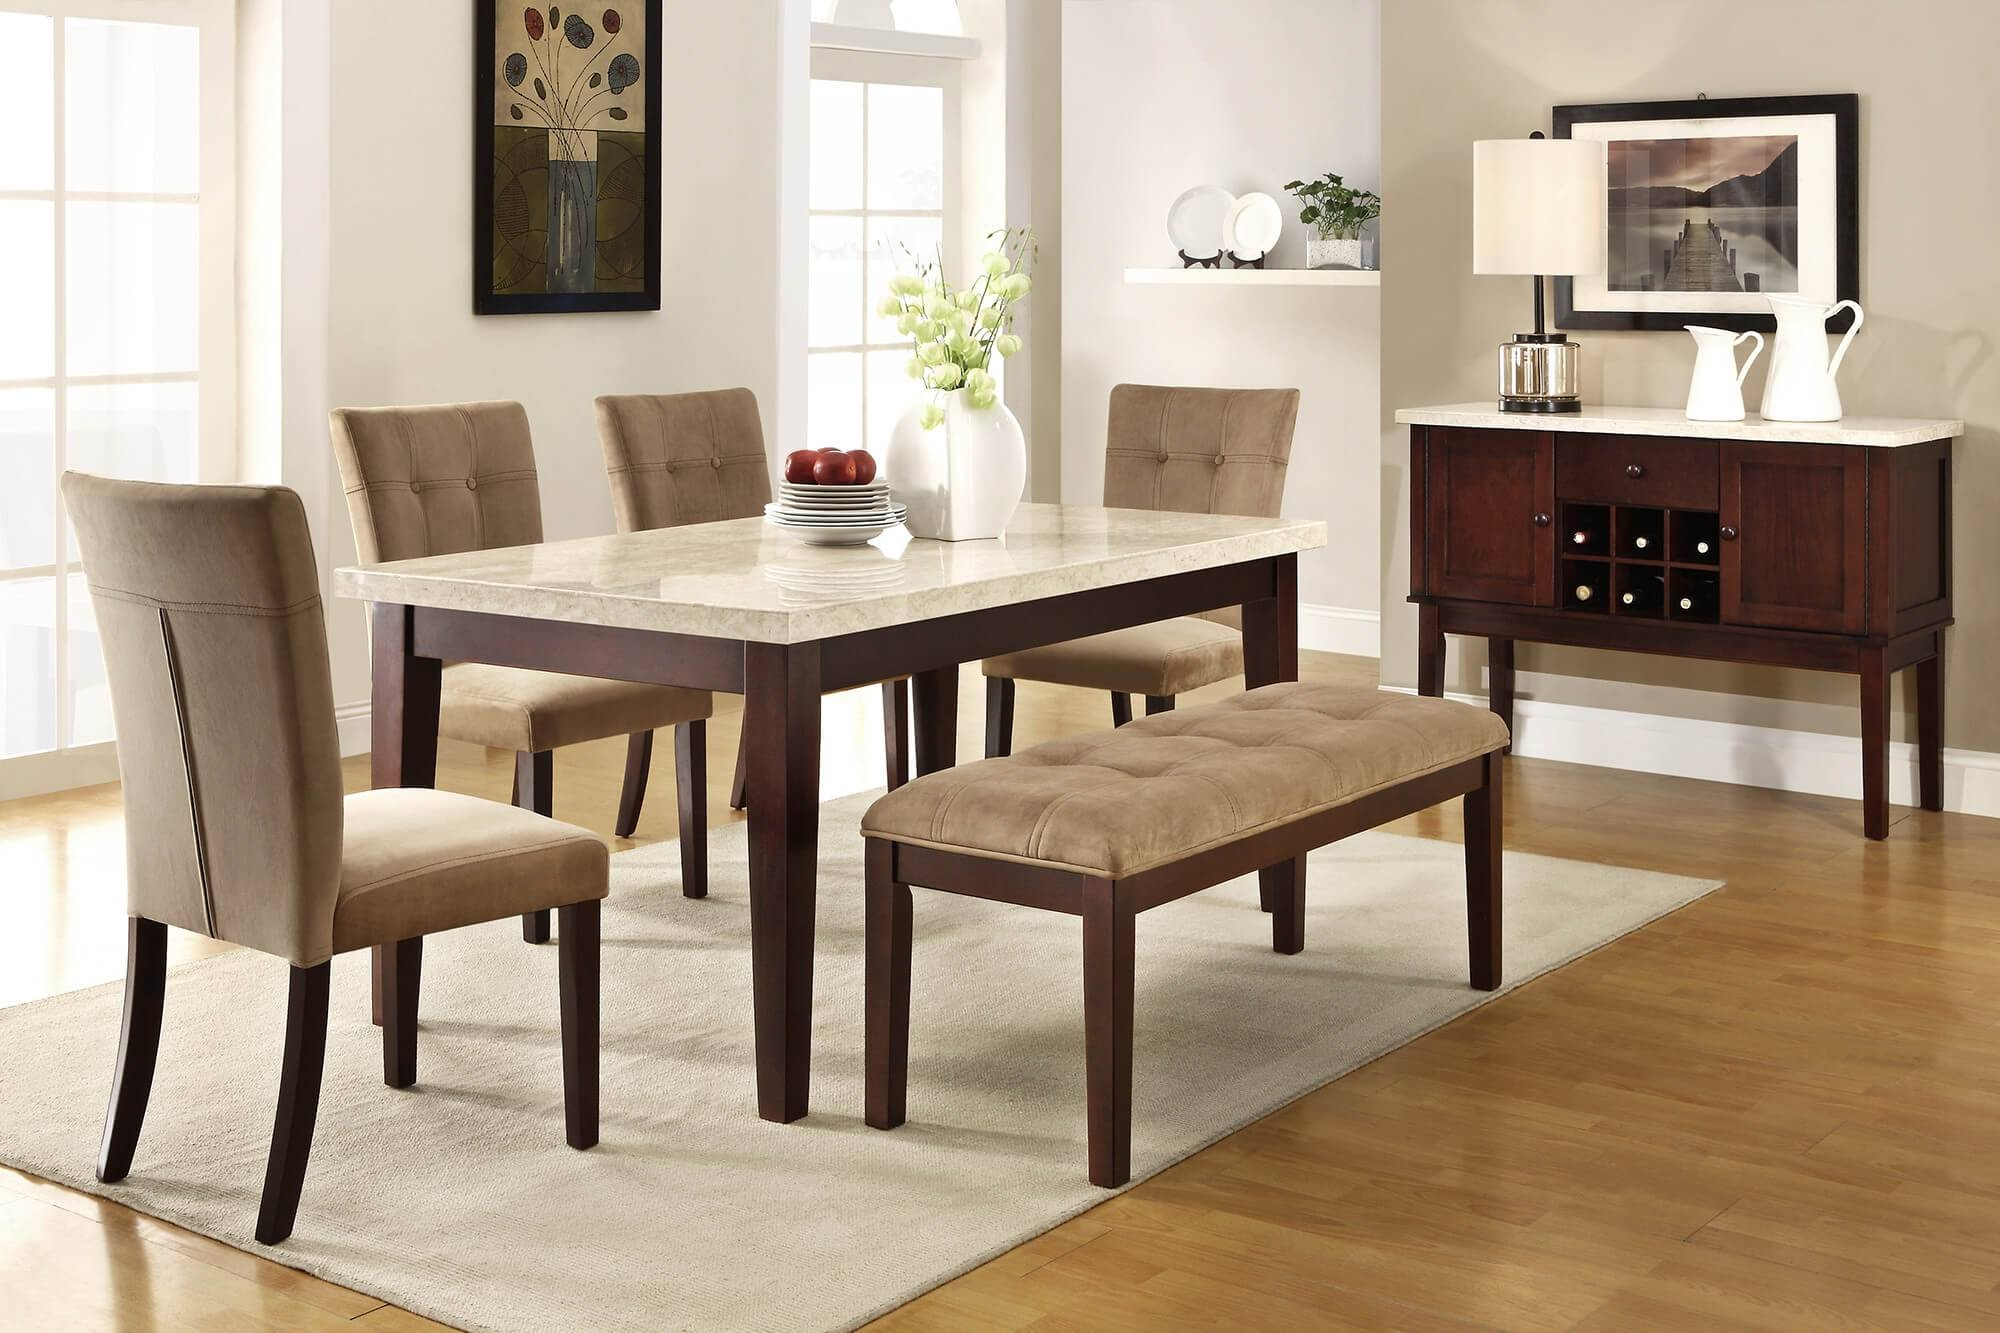 Nice Dining Room Filled Wooden Sideboard And Marble Top Table With For Most Recently Released Dining Room Sets With Sideboards (#11 of 15)